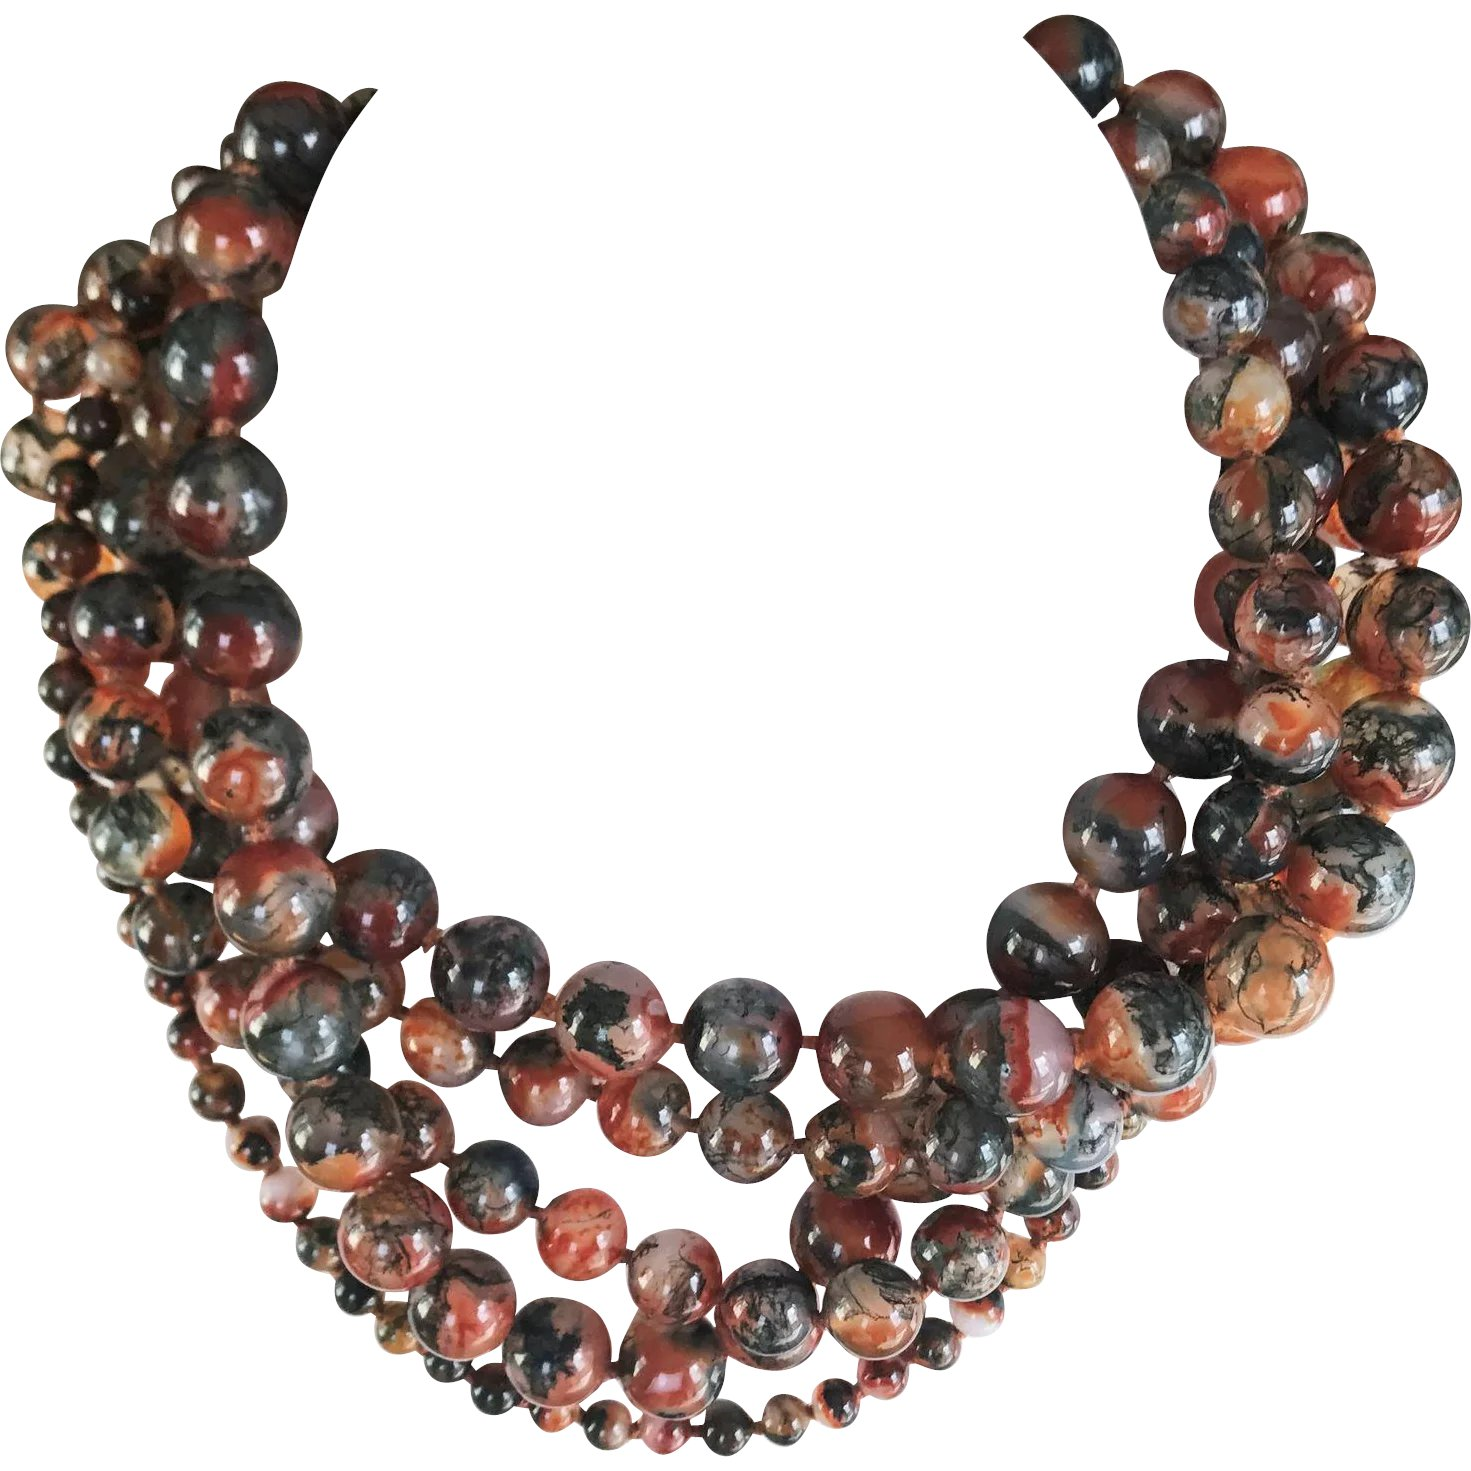 f338d002f Paloma Picasso for Tiffany & Co 5 Strand Agate Necklace : Green Wood  Gallery | Ruby Lane